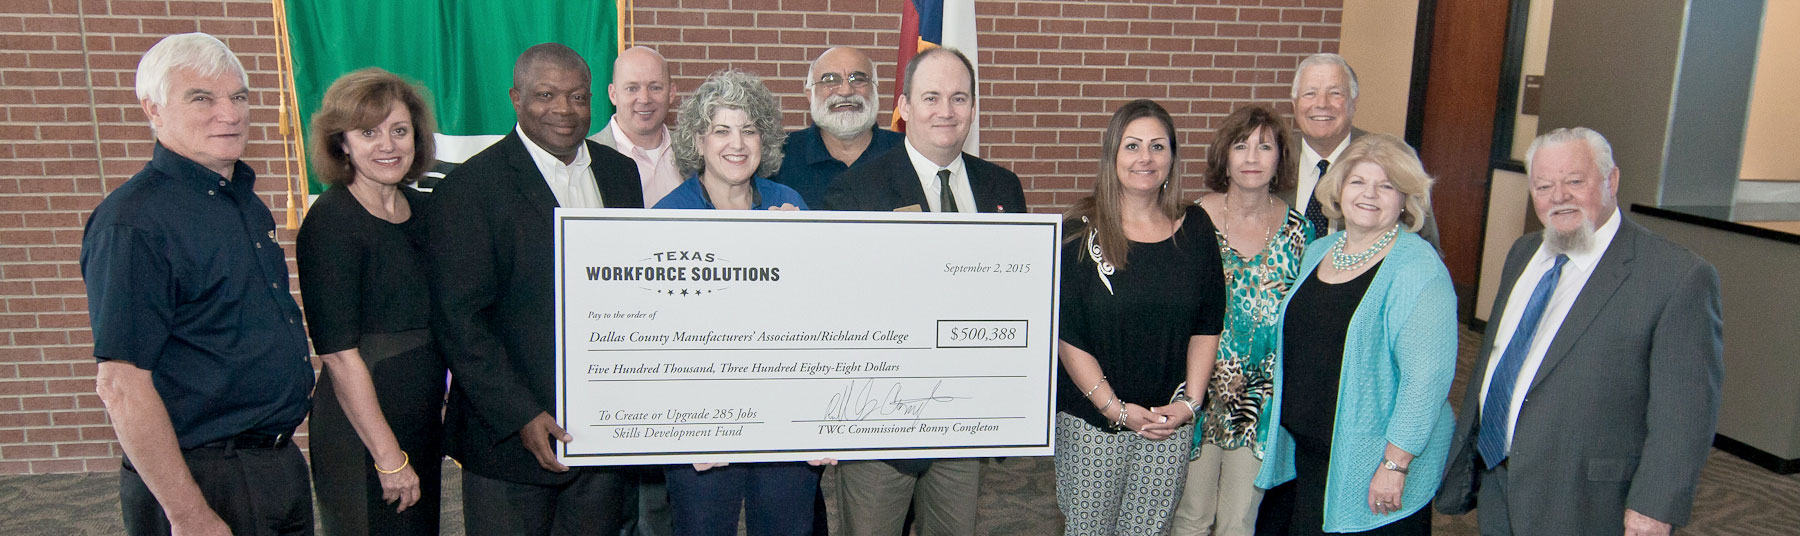 Richland college receives grant from texas workforce commission richland college texas workforce commission twc dallas county manufacturers association dcma garland chamber of commerce and local business malvernweather Gallery